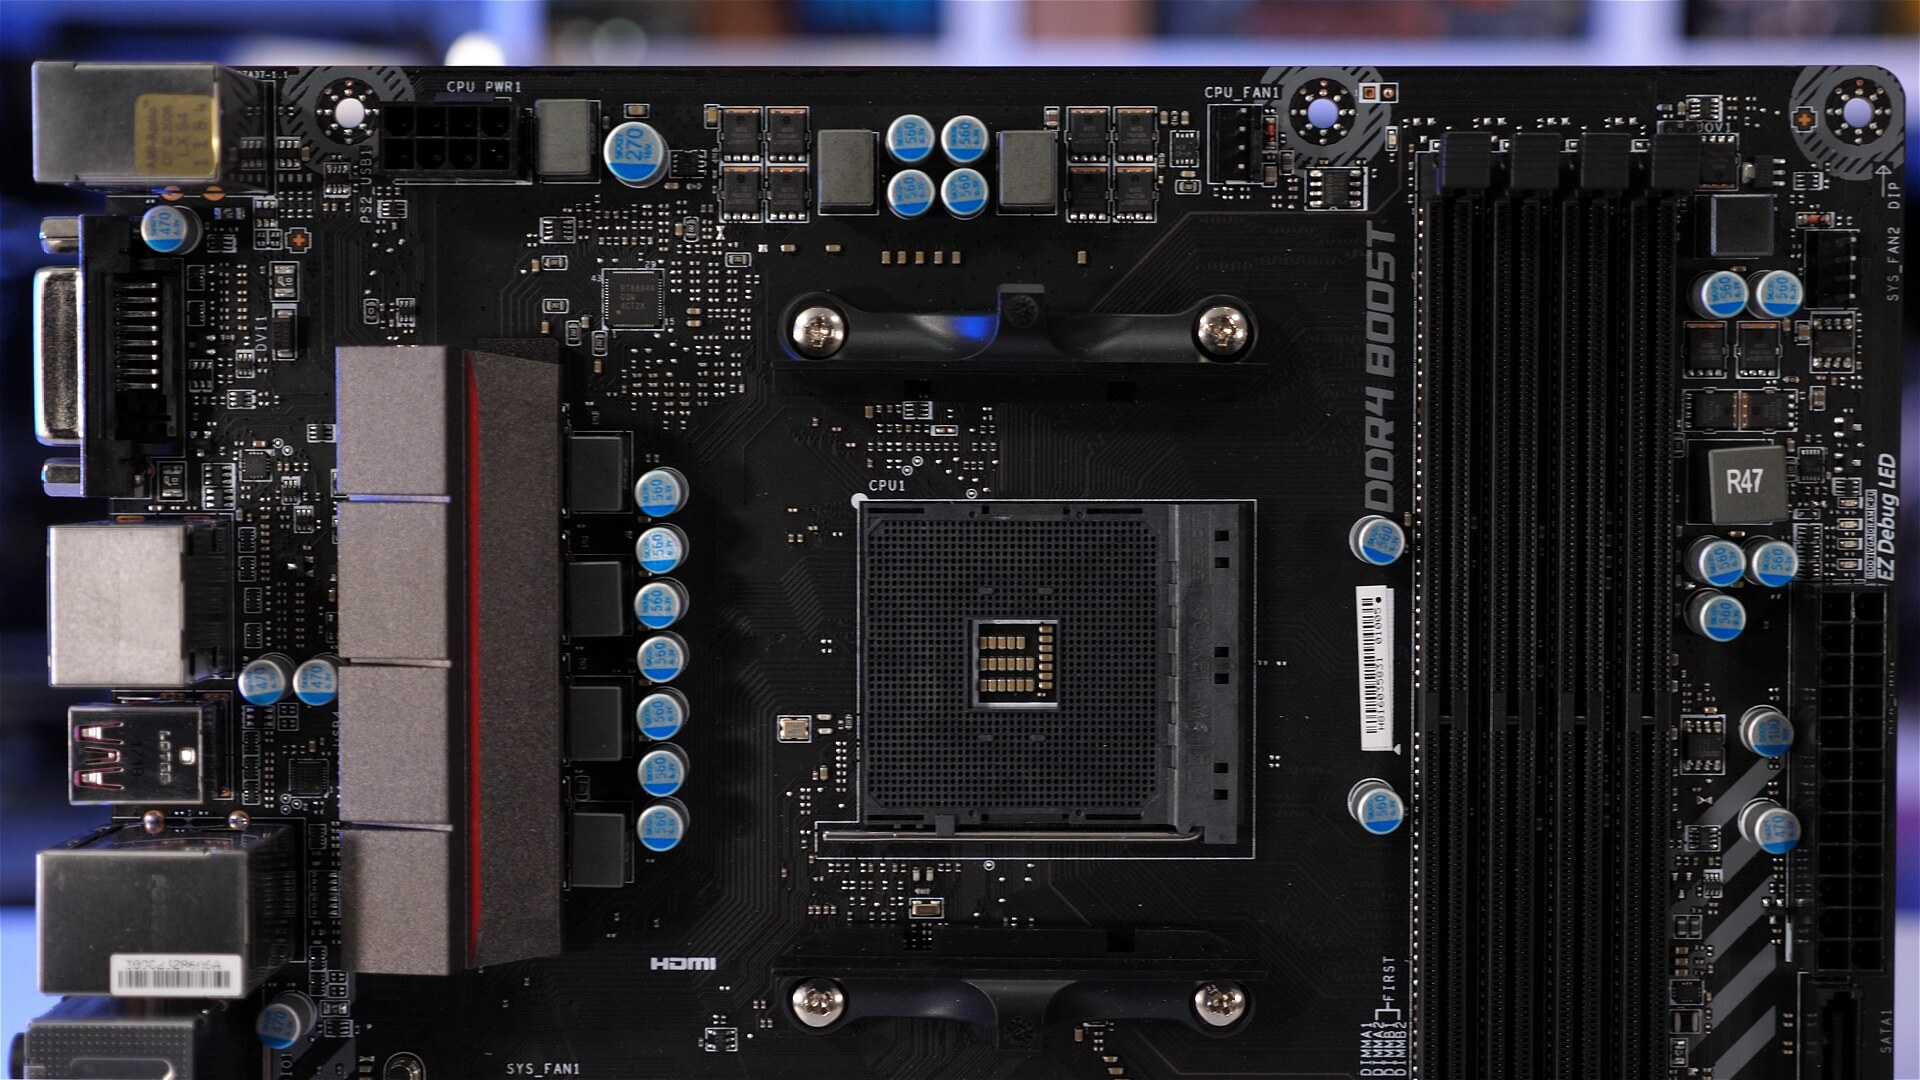 Don't Bother with A320 Motherboards, Go for AMD's B350